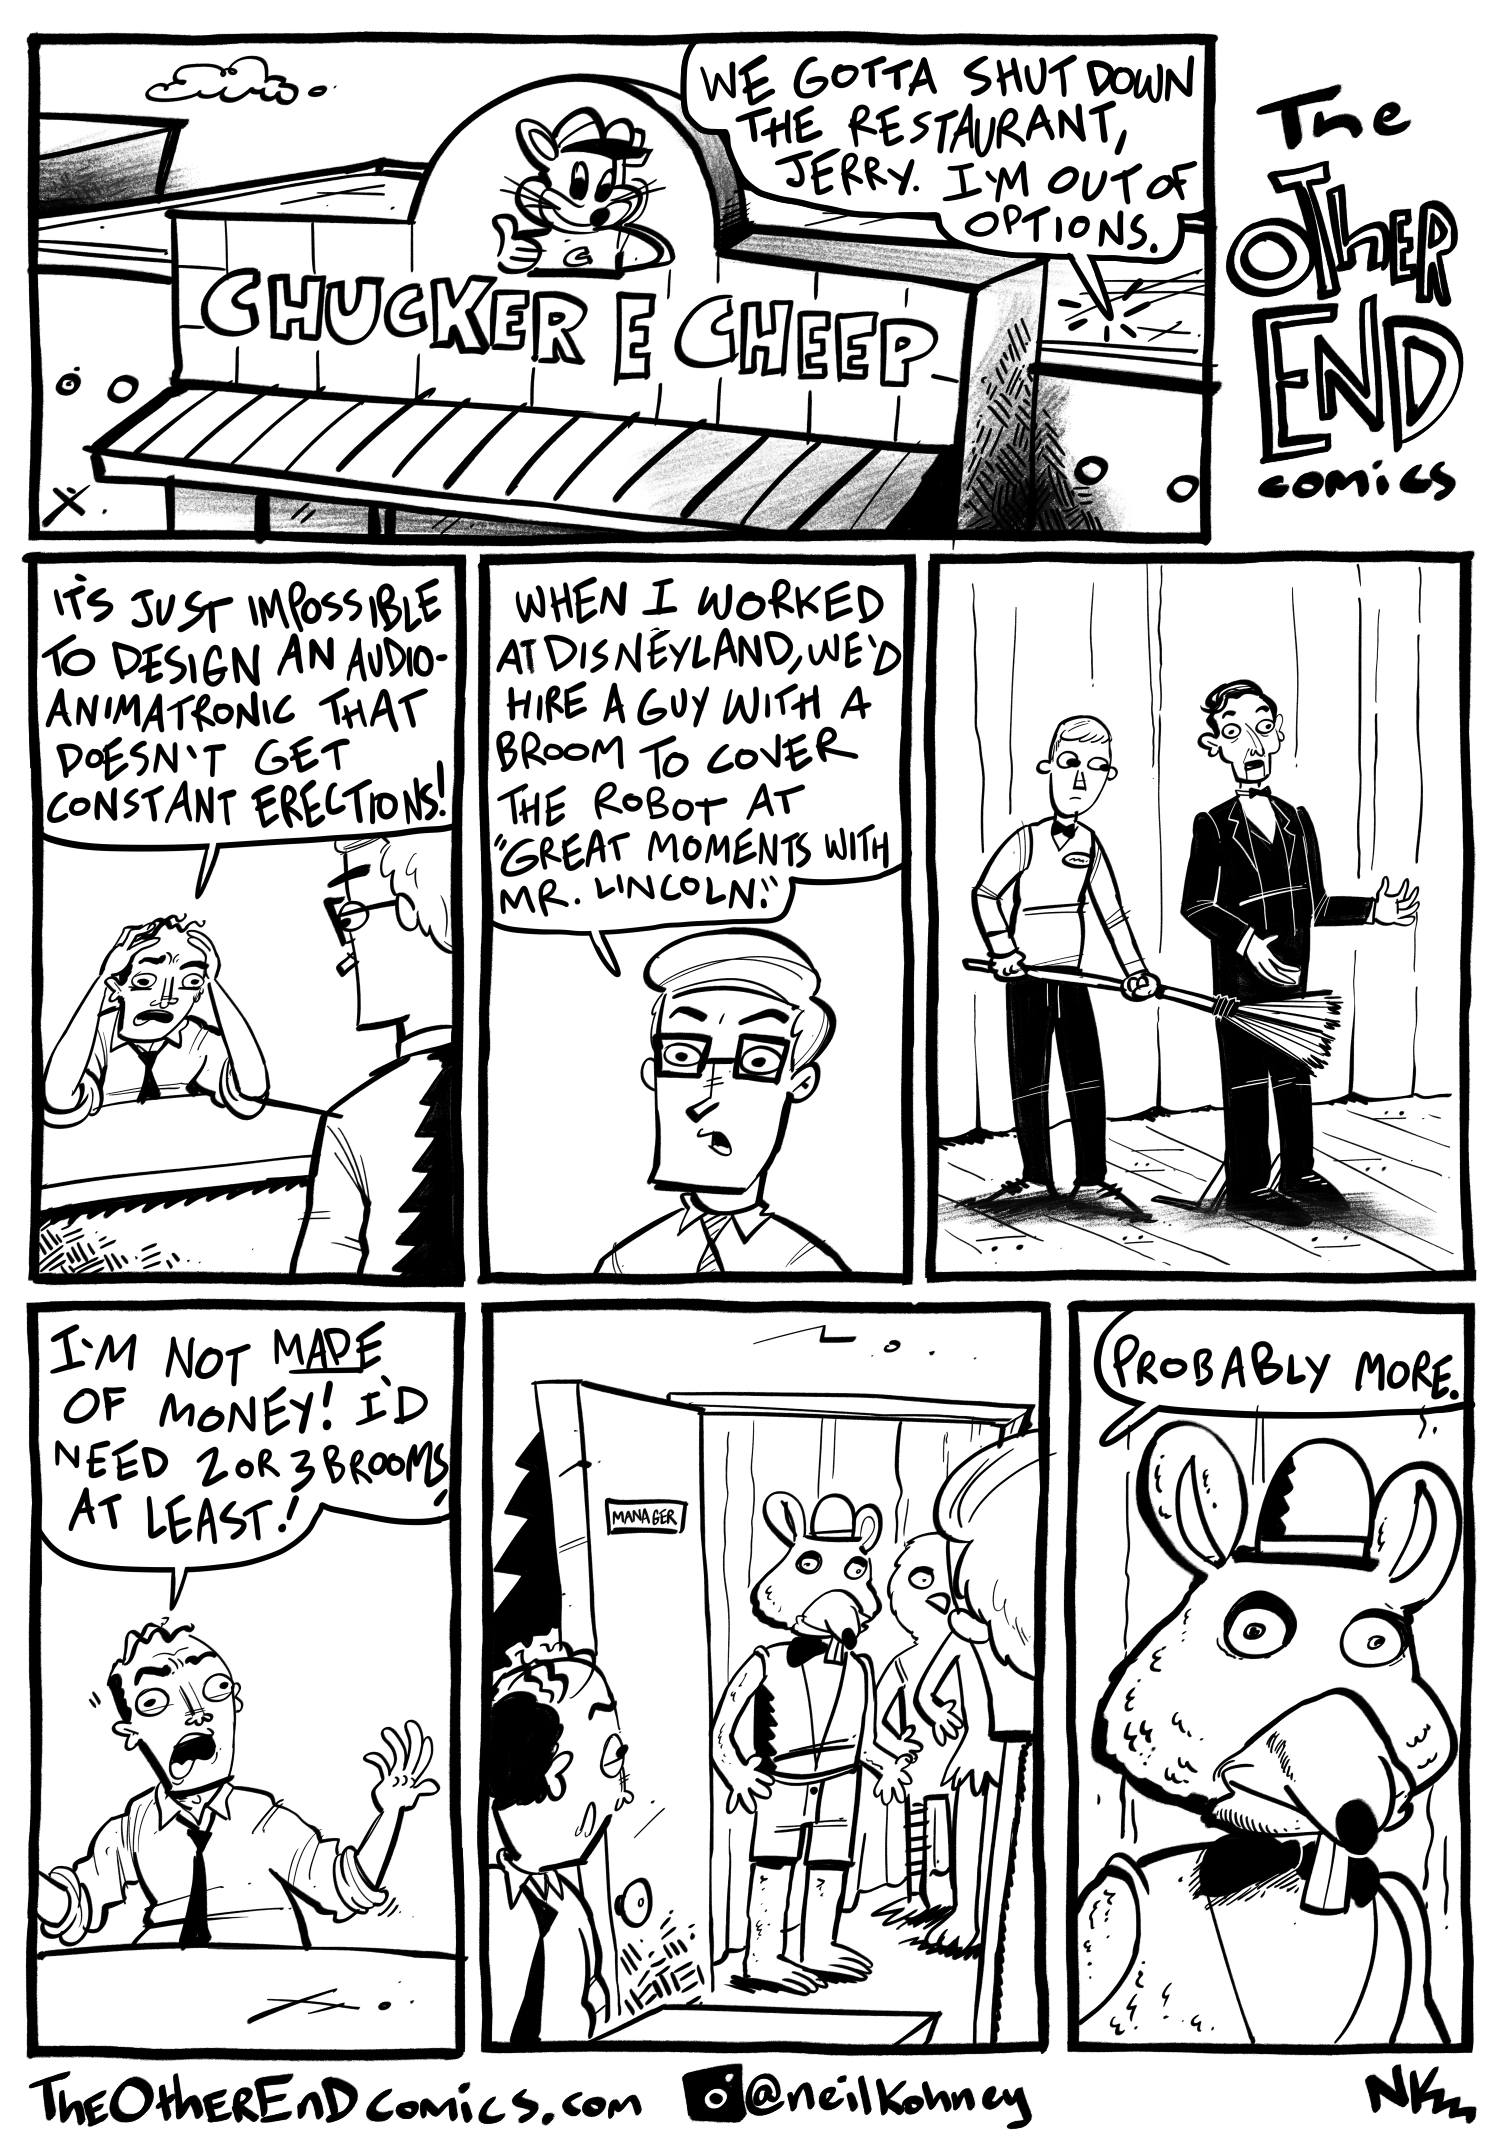 There should be a chair directly behind mr Lincoln. This comic is so fake